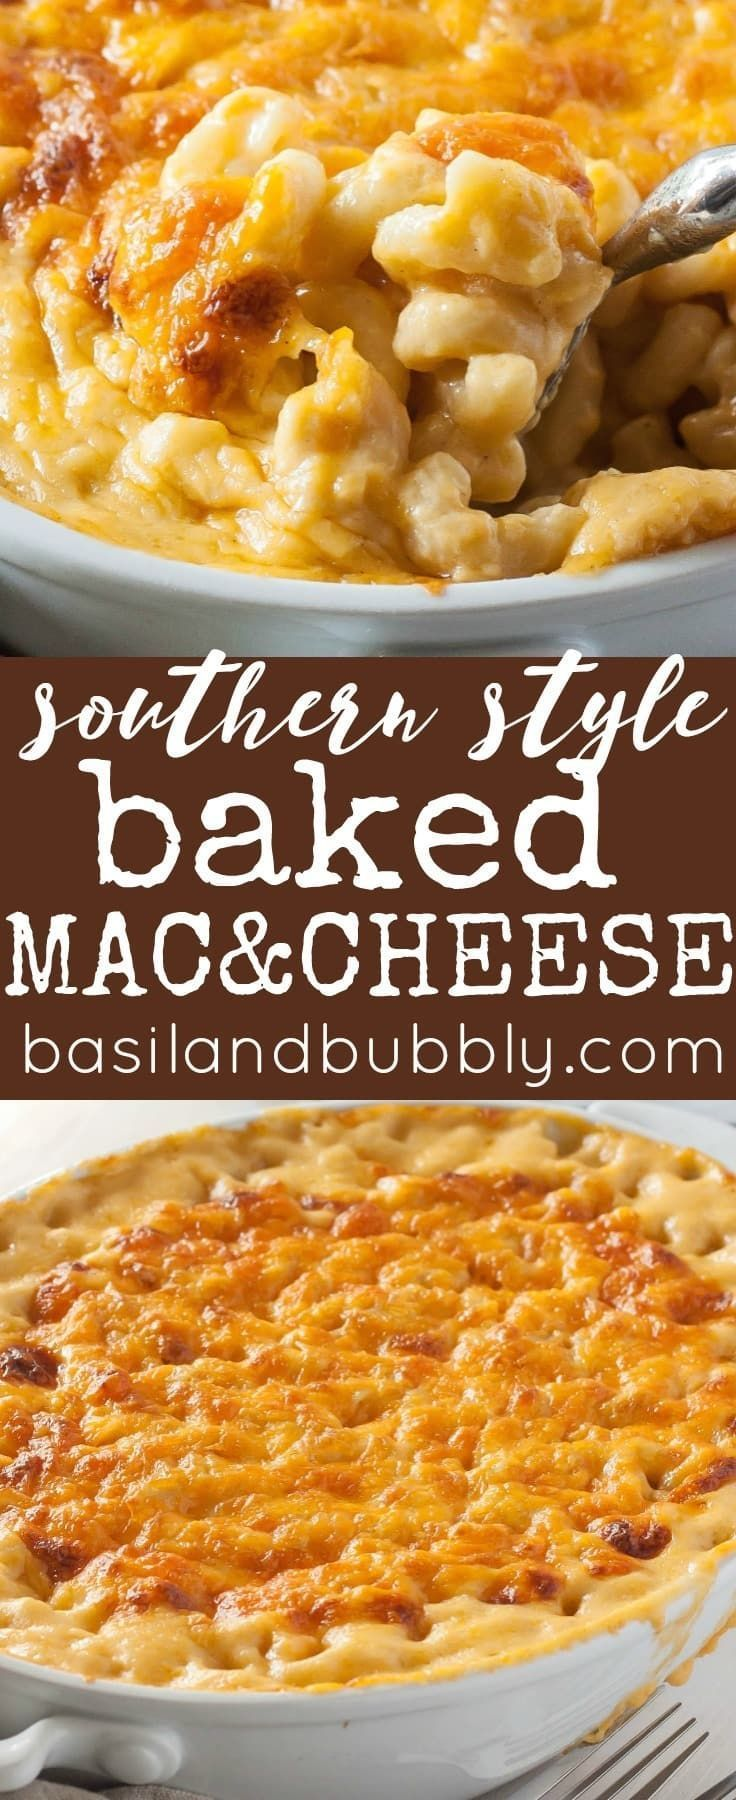 Baked Macaroni and Cheese Absolutely perfect Southern Style Baked Macaroni and Cheese recipe.  Easy, delicious holiday or weeknight side dish that's the perfect amount of creamy.Absolutely perfect Southern Style Baked Macaroni and Cheese recipe.  Easy, delicious holiday or weeknight side dish that's the perfect amount of creamy.